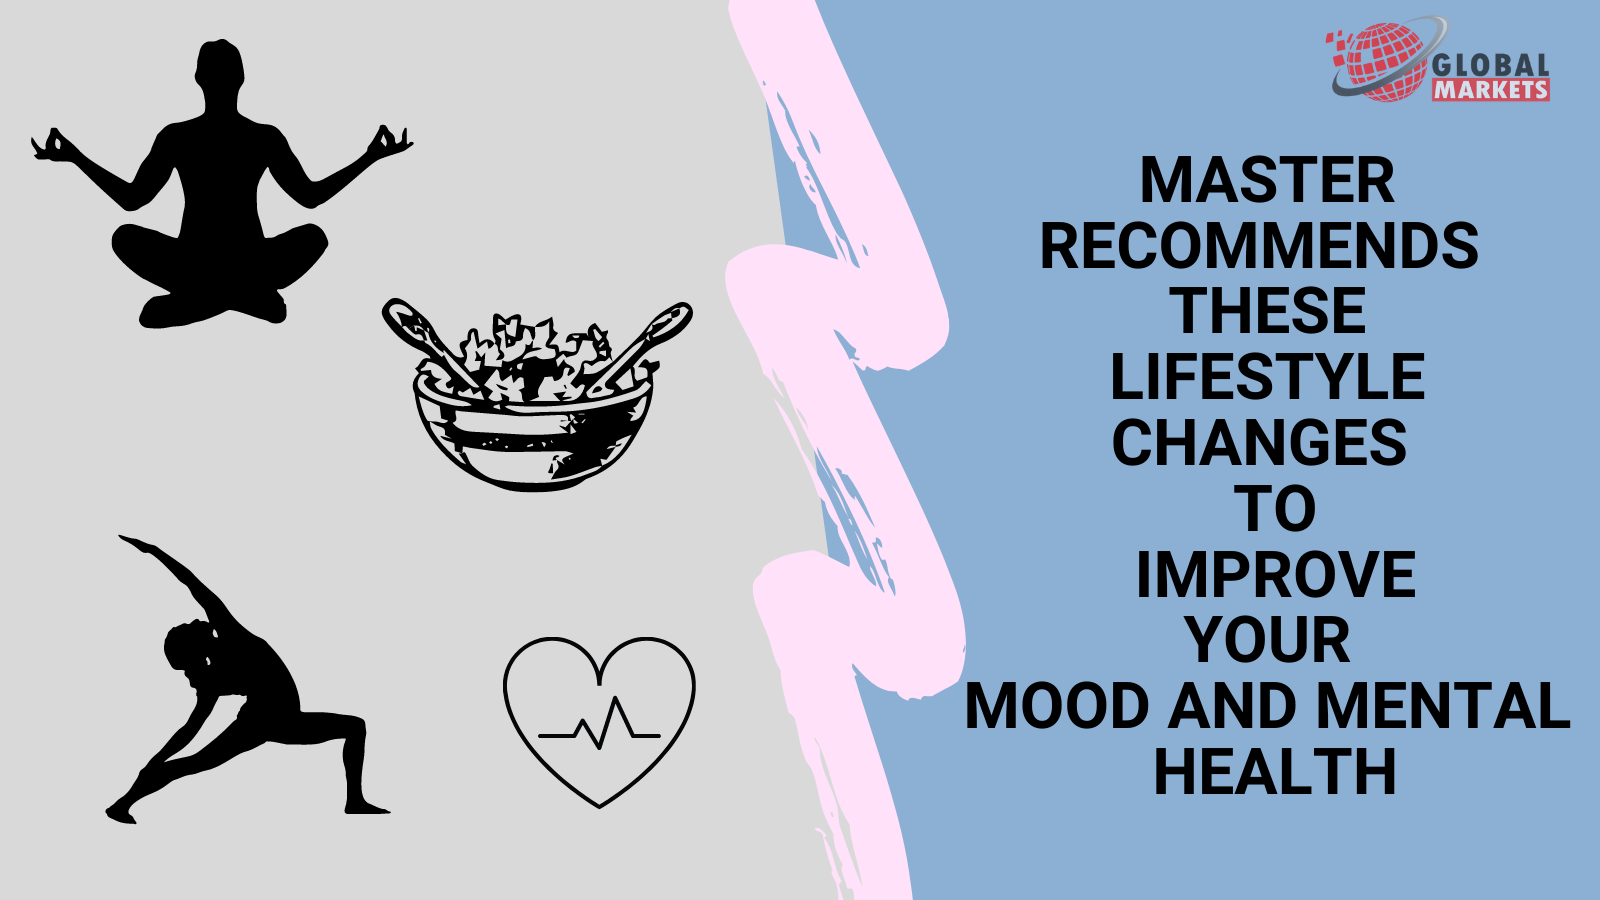 Master Recommends These Lifestyle Changes To Improve Your Mood And Mental Health